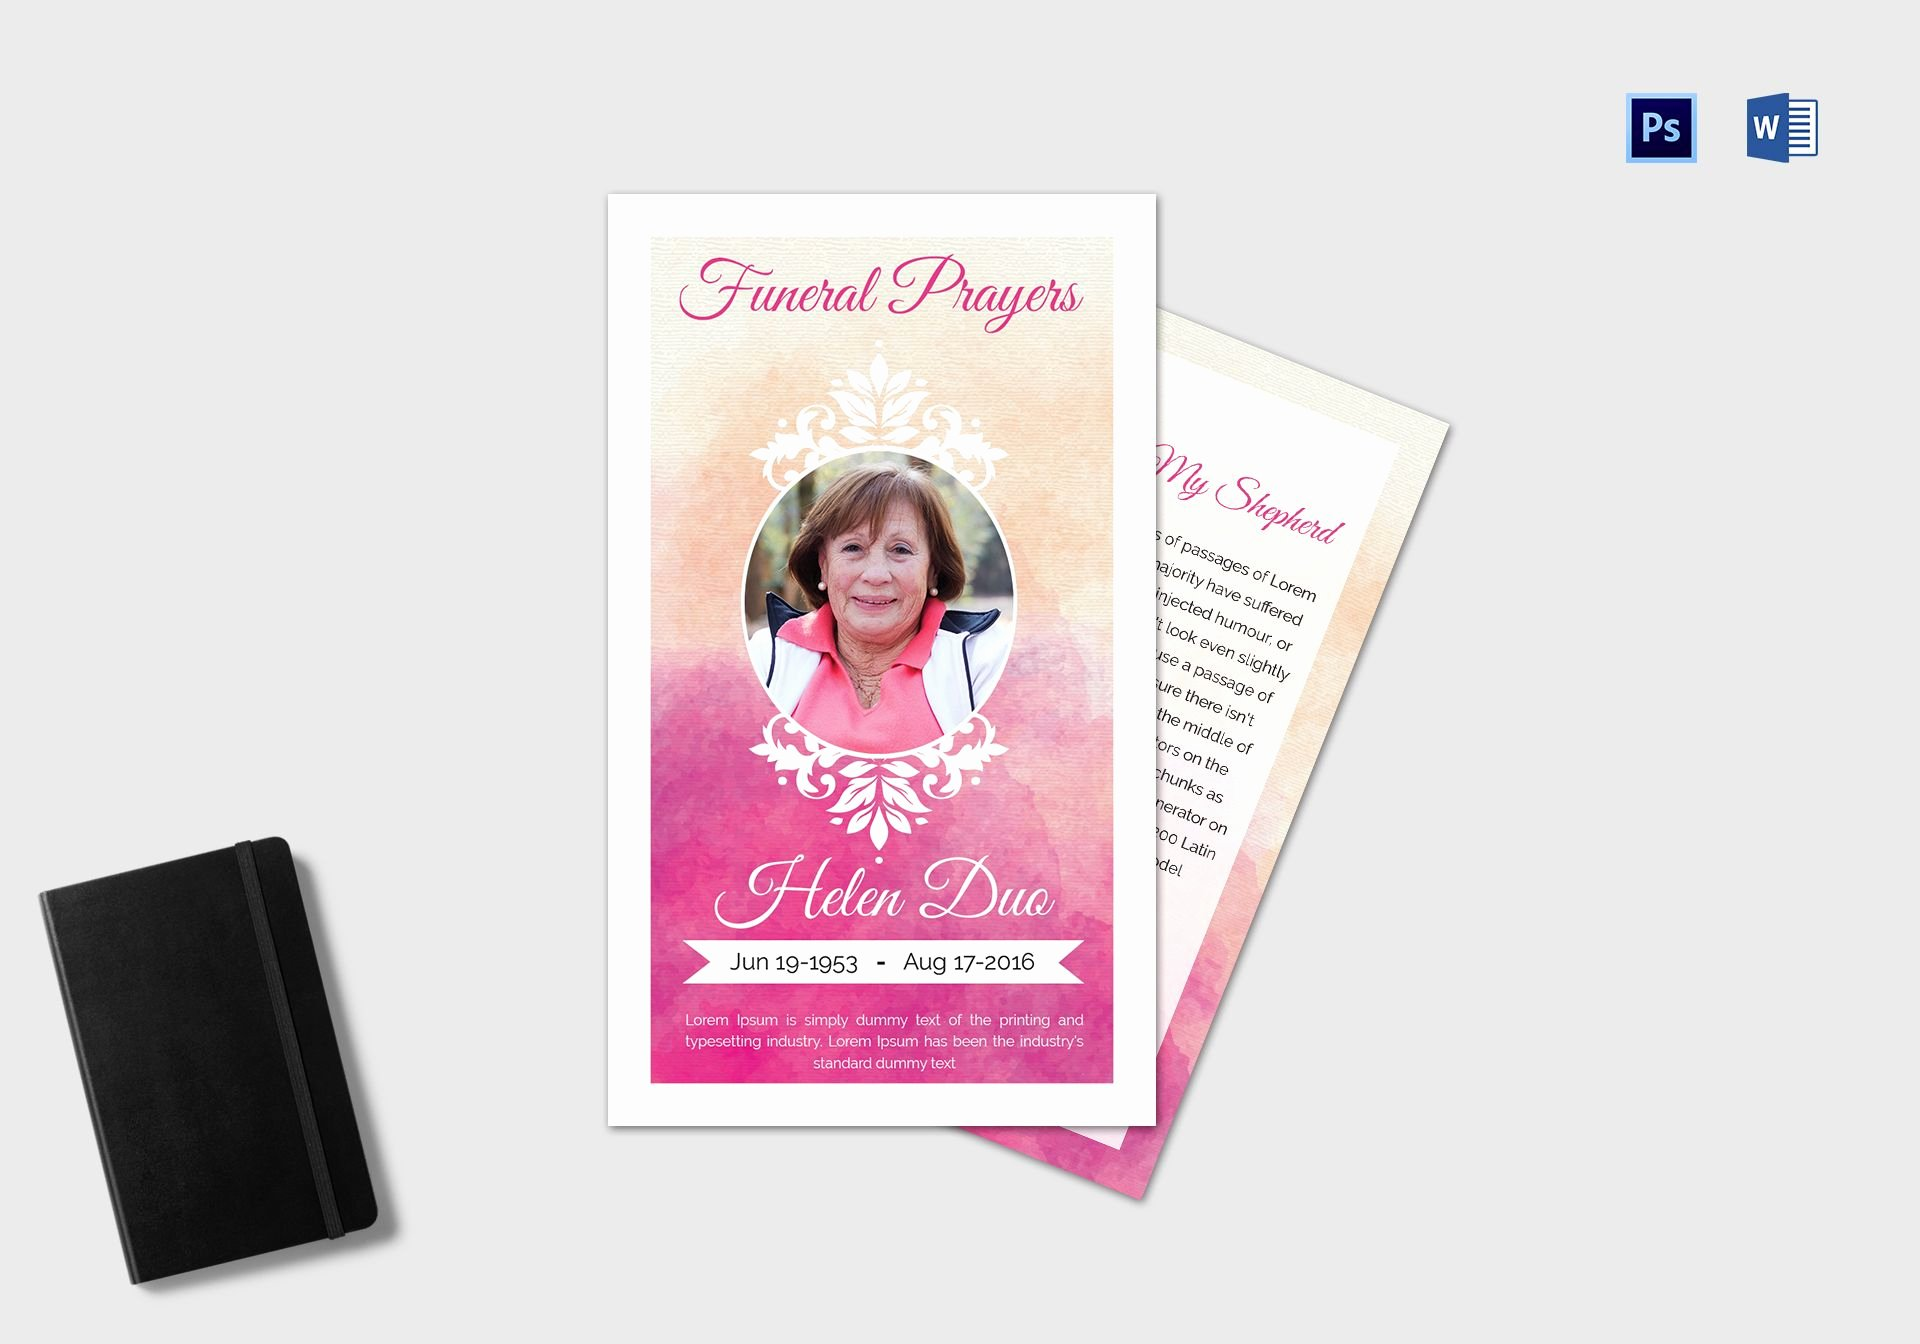 Service Dog Id Card Template Free Download Inspirational Funeral Prayer Card Template for Grandmother In Adobe